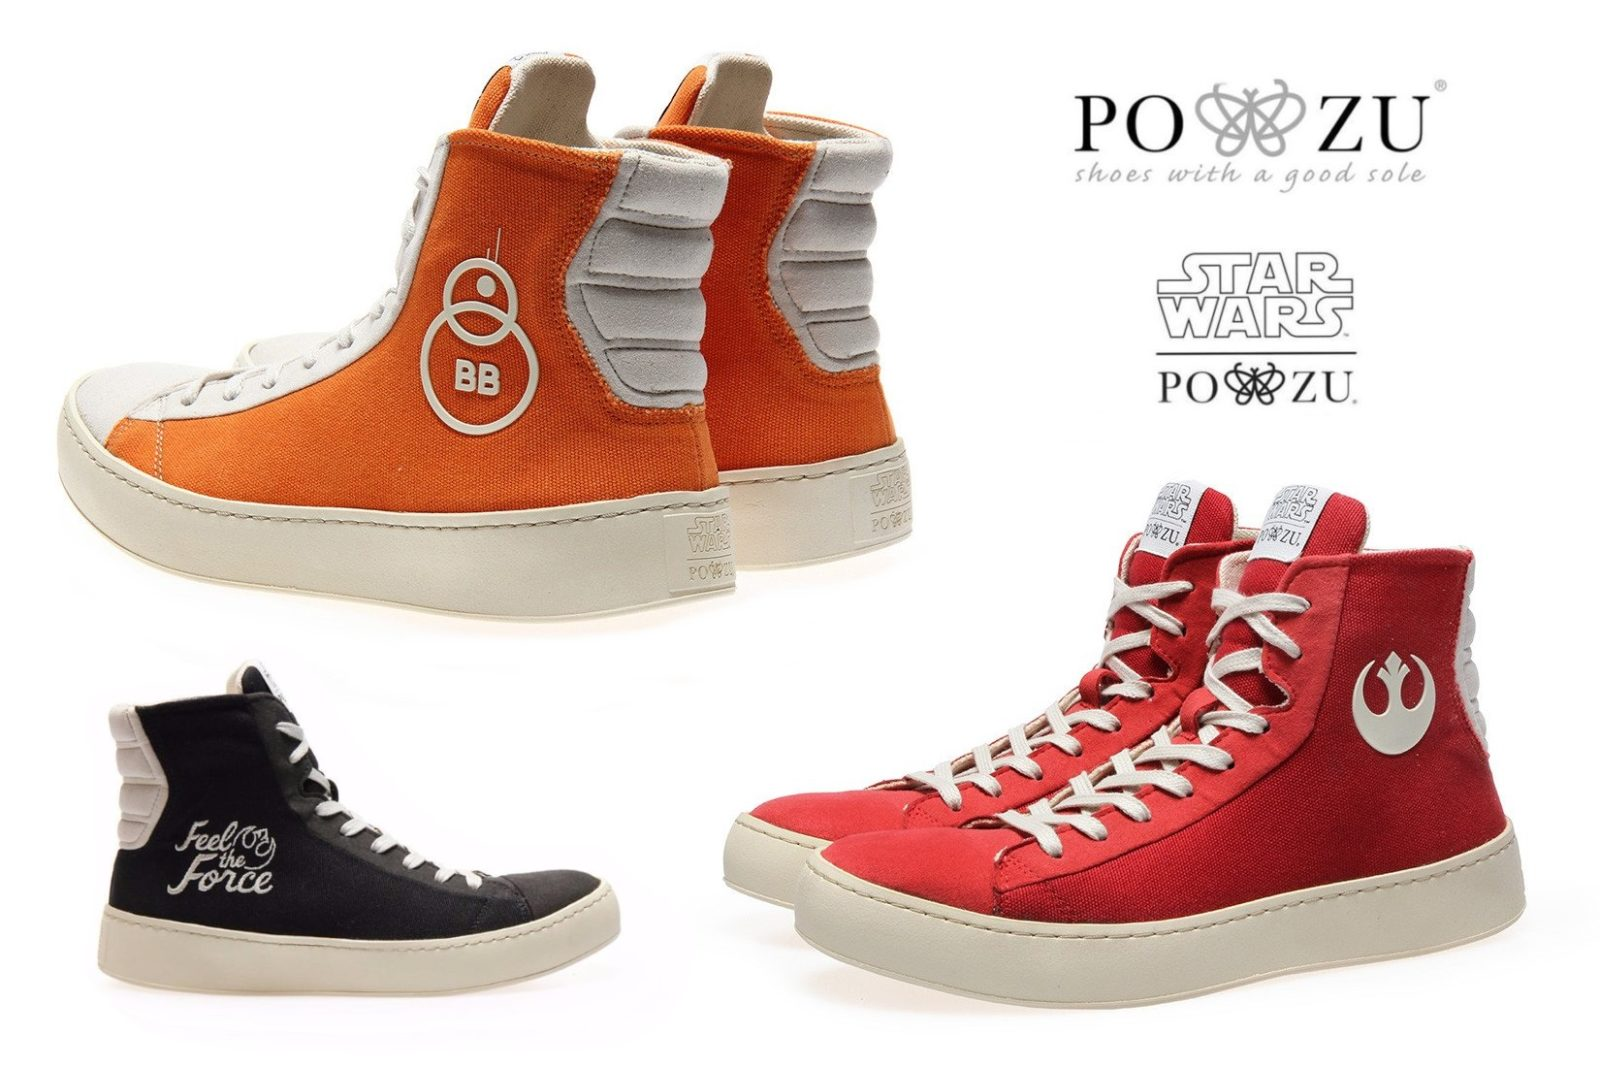 Great Discount Offer on Selected Po-Zu Sneakers!